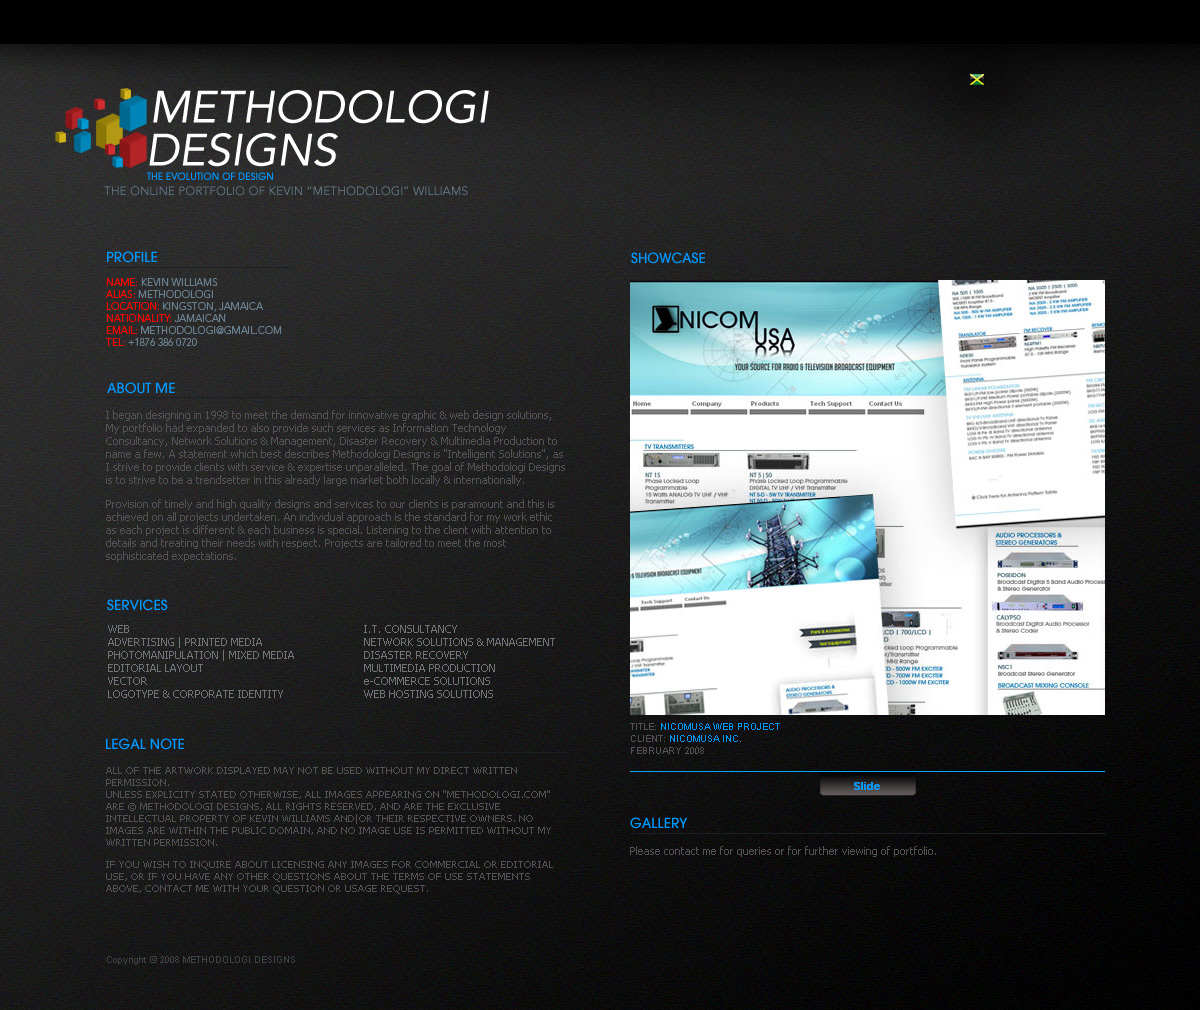 Methodologi Designs Online by webgraphix